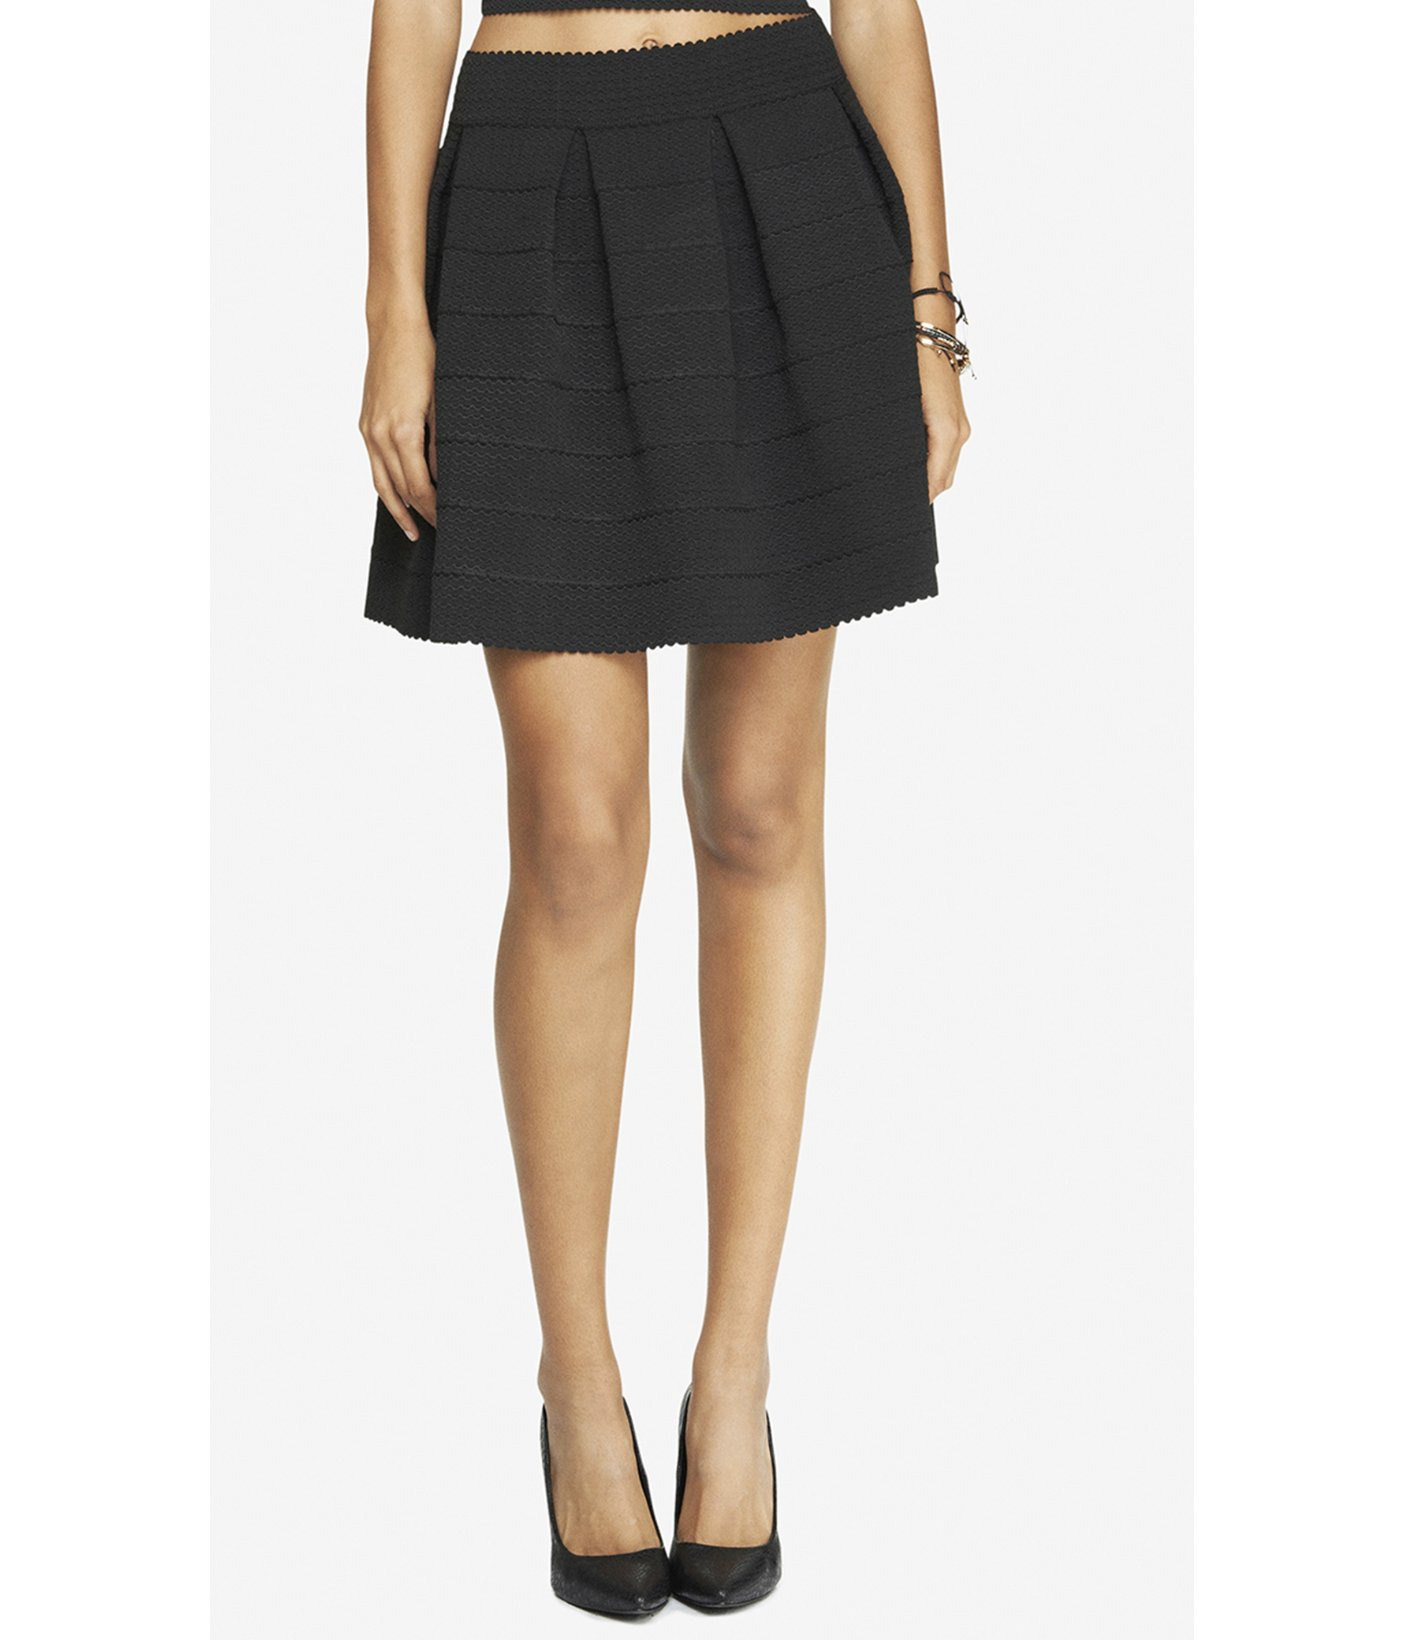 Express High Waist Elastic Full Skirt - Black in Black (PITCH BLACK) | Lyst